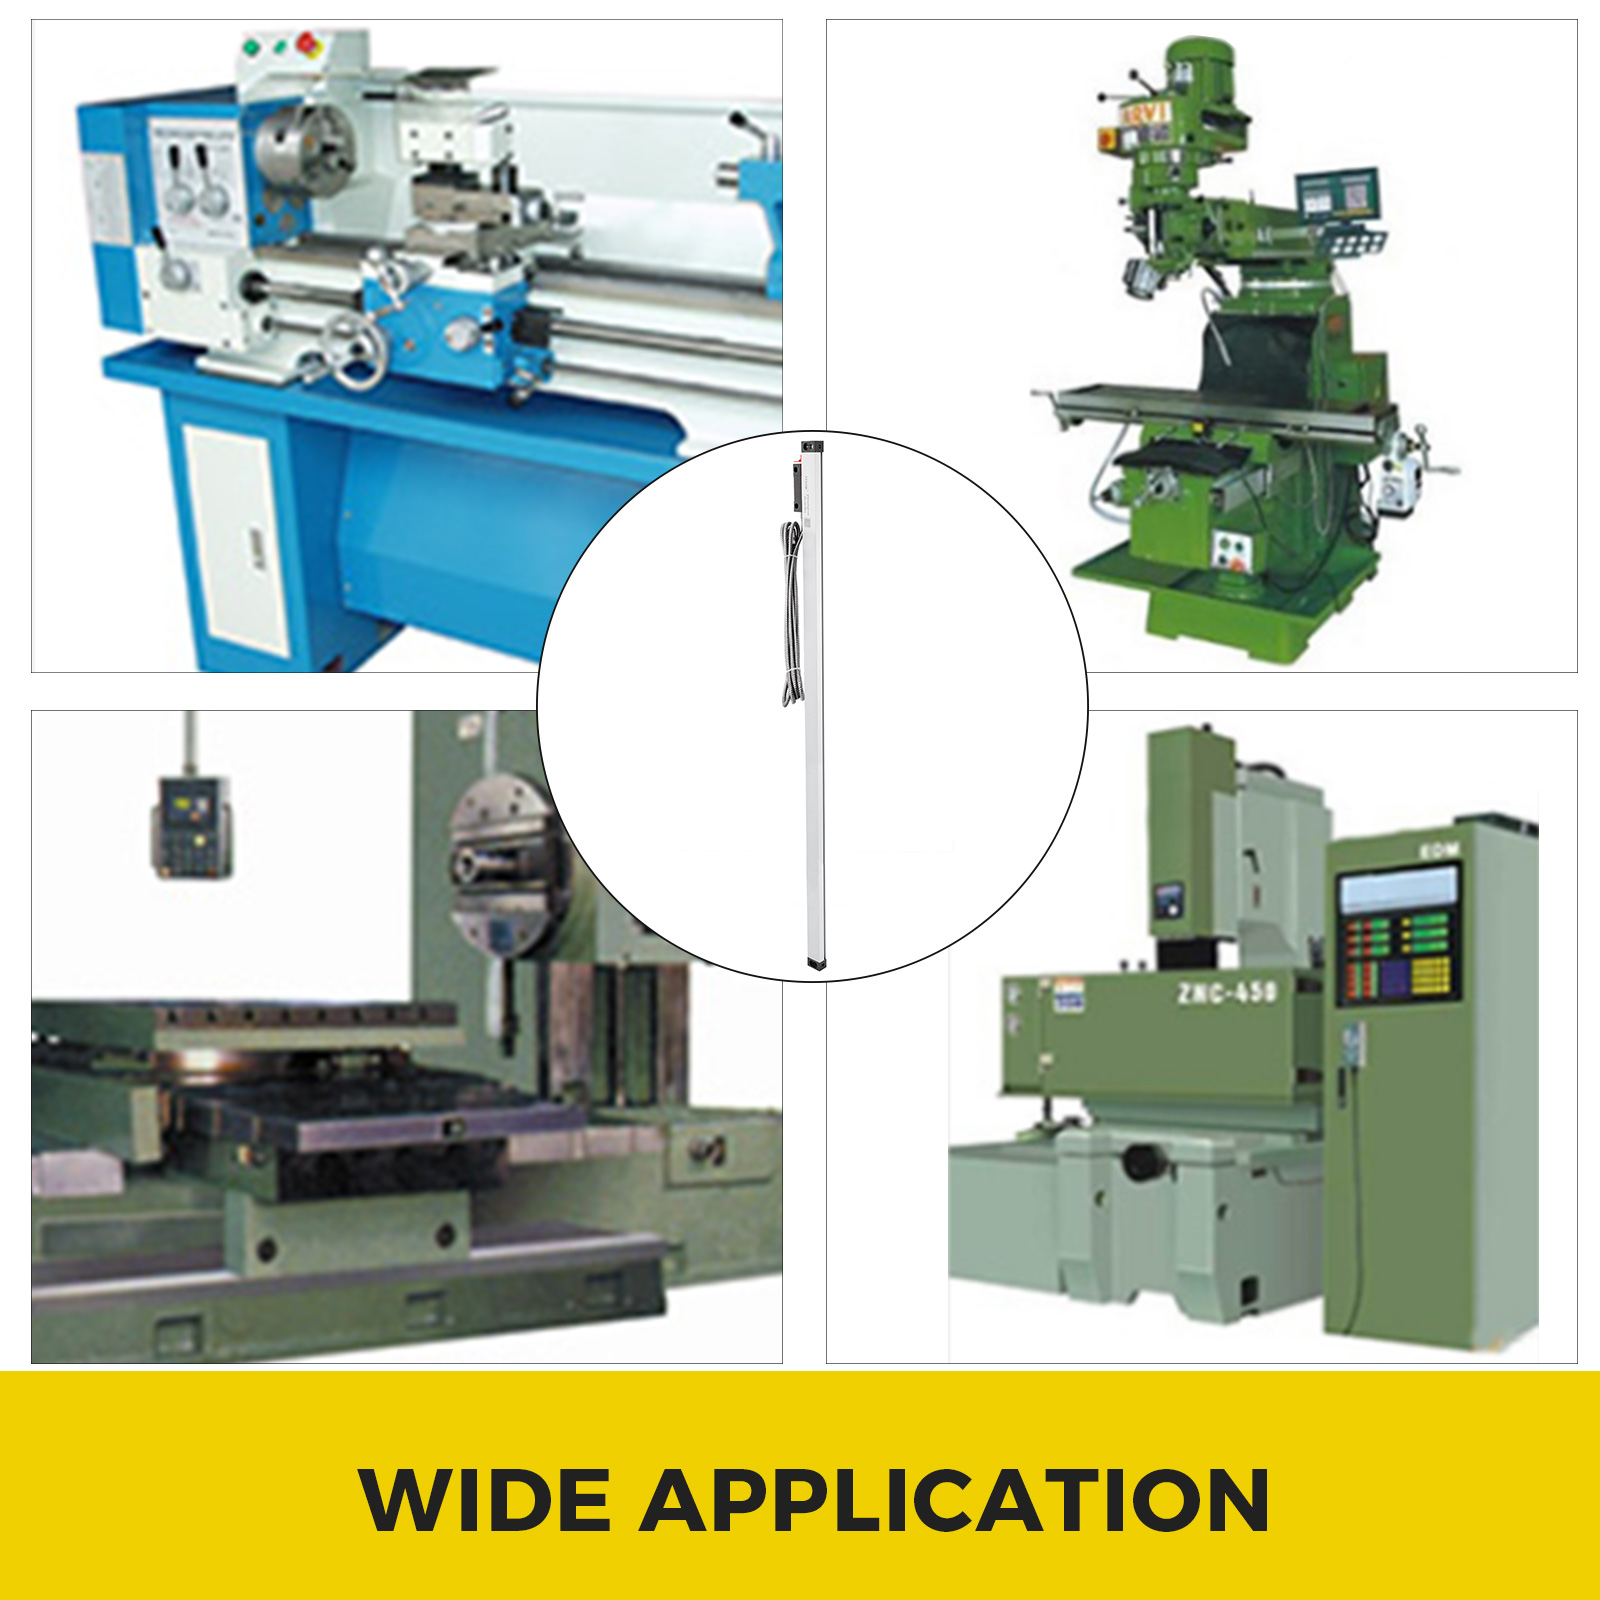 2-3-Axis-Digital-Readout-Linear-Scale-Double-Seal-5-Bearing-System-Grinding thumbnail 247